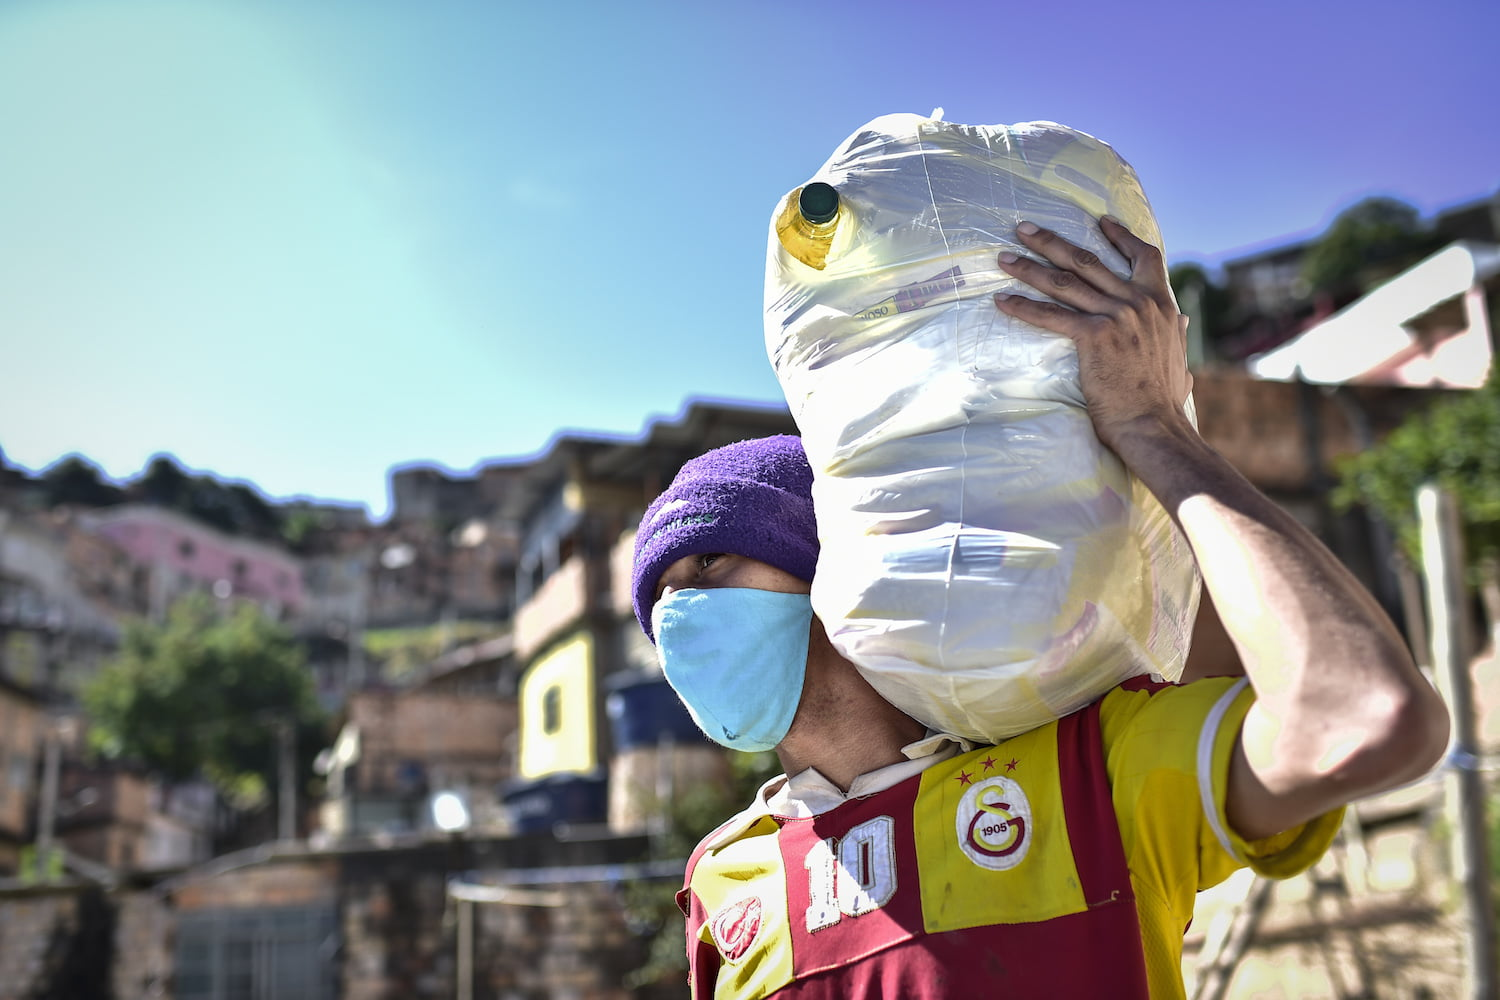 Brazil tops 2.9 million coronavirus infections after adding more than 53,000 new ones